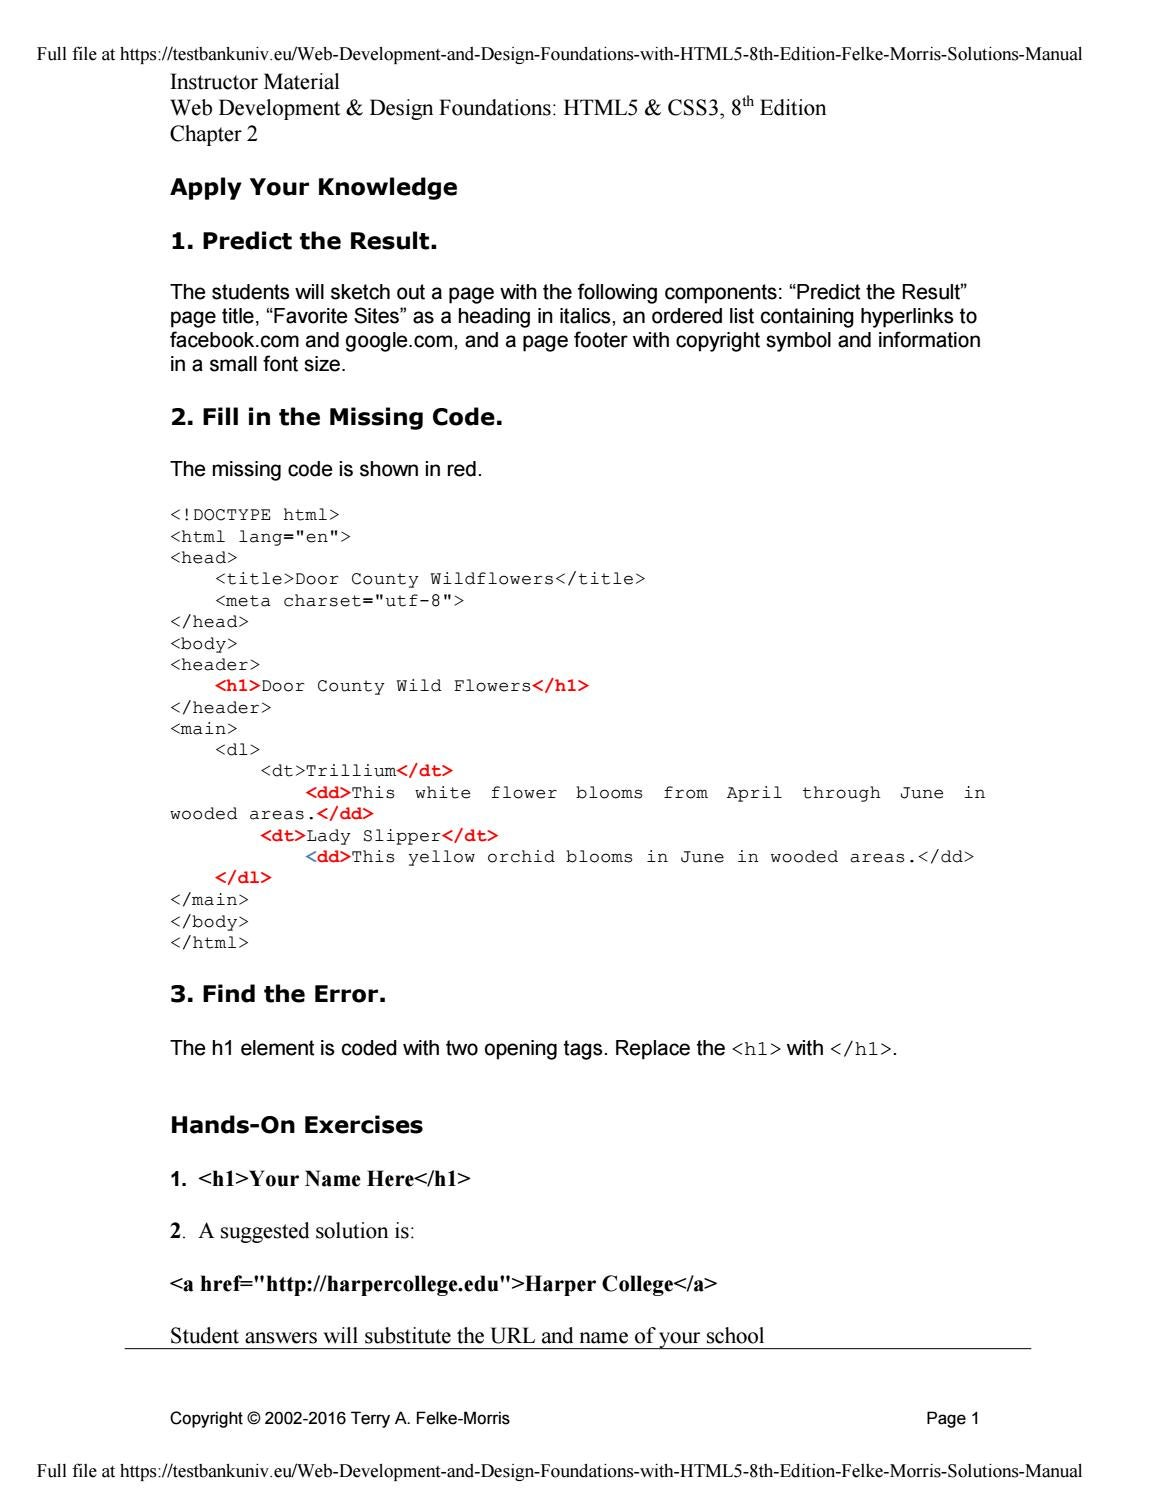 Web Development And Design Foundations With Html5 8th Edition Felke Morris Solutions Manual By A656556023 Issuu